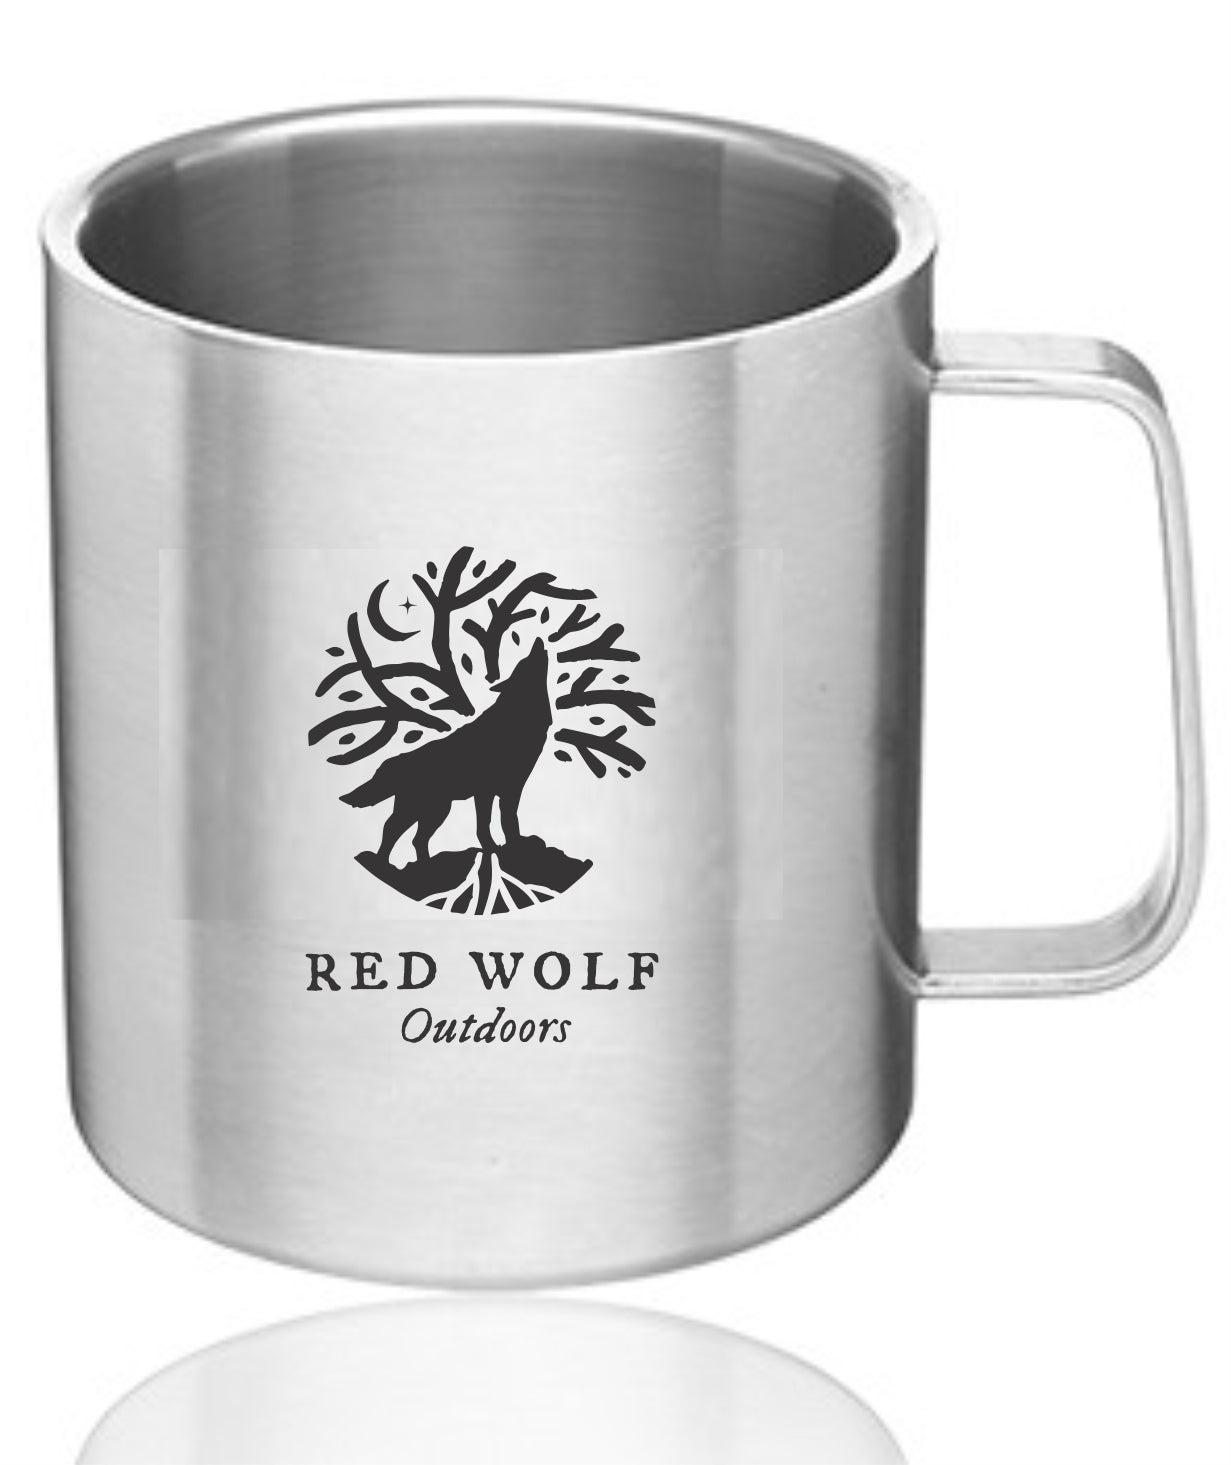 Red Wolf Stainless Steel Mug with Lid